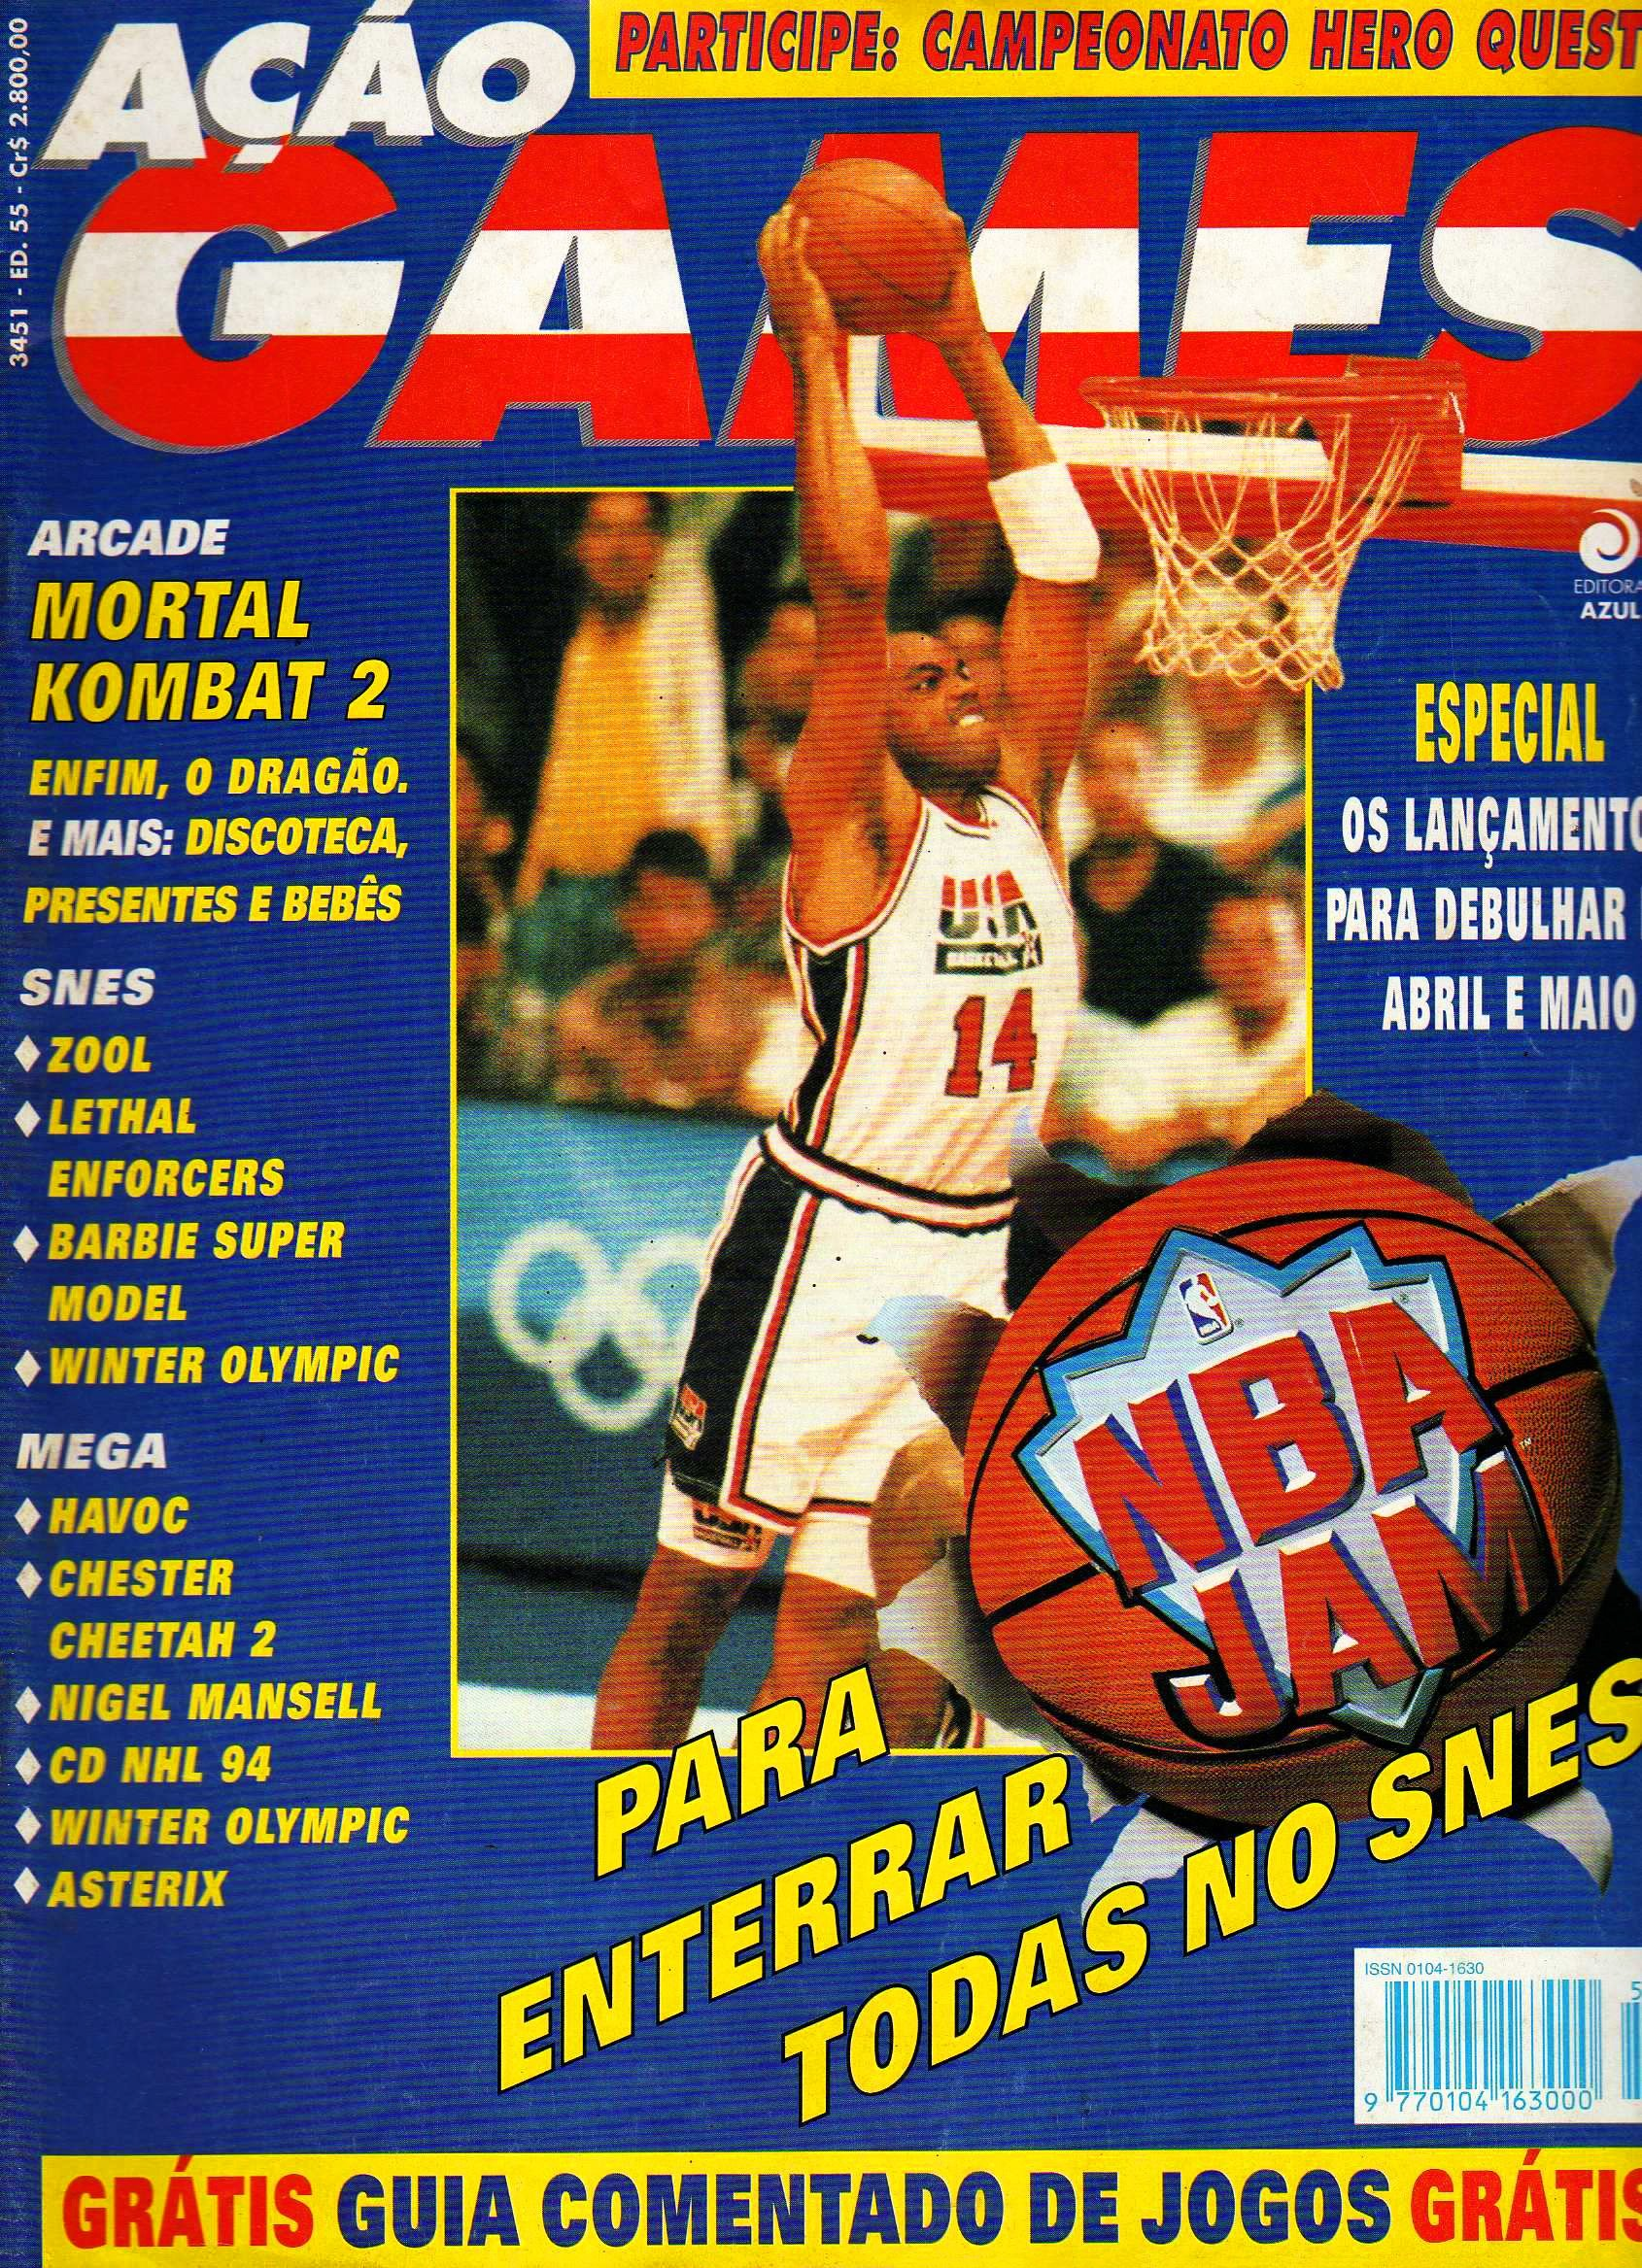 Acao Games Issue 055 (March 1994)